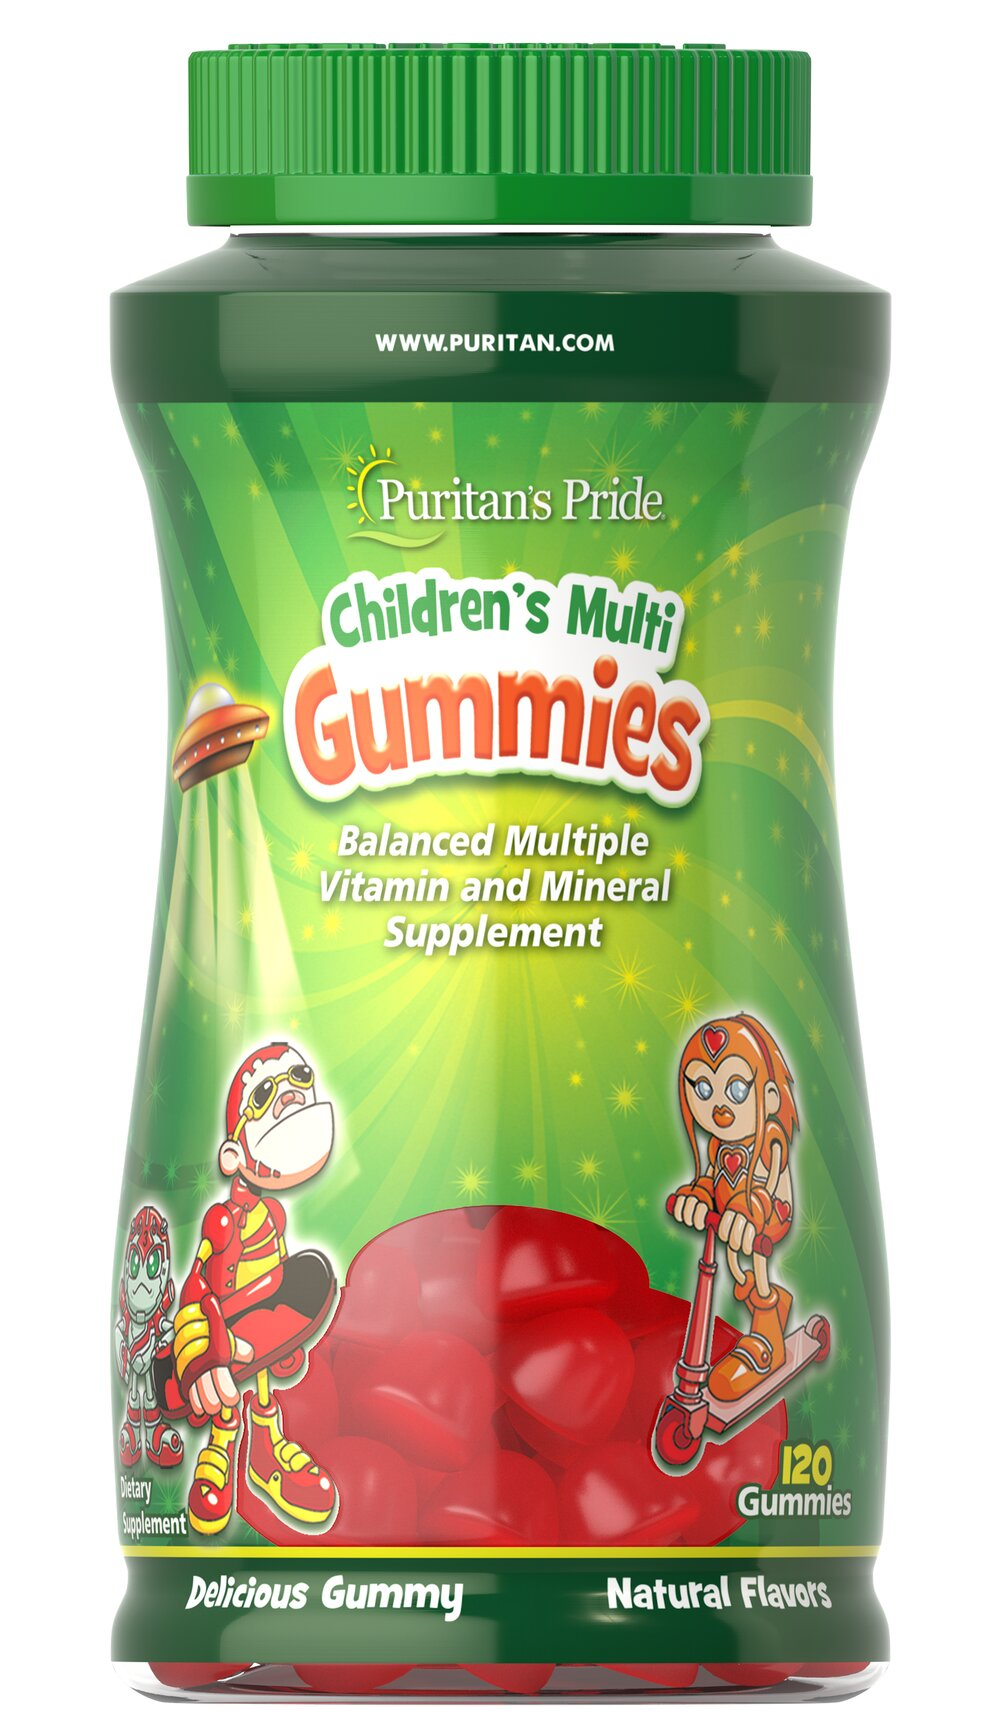 Children's Multivitamins & Mineral Gummies <p>These multivitamins gummies are packed with essential vitamins and minerals necessary for your child's healthy growth and development.** Included are Vitamin D for the bones, and Vitamins C and E for the immune system.**</p> 120 Gummies  $17.09